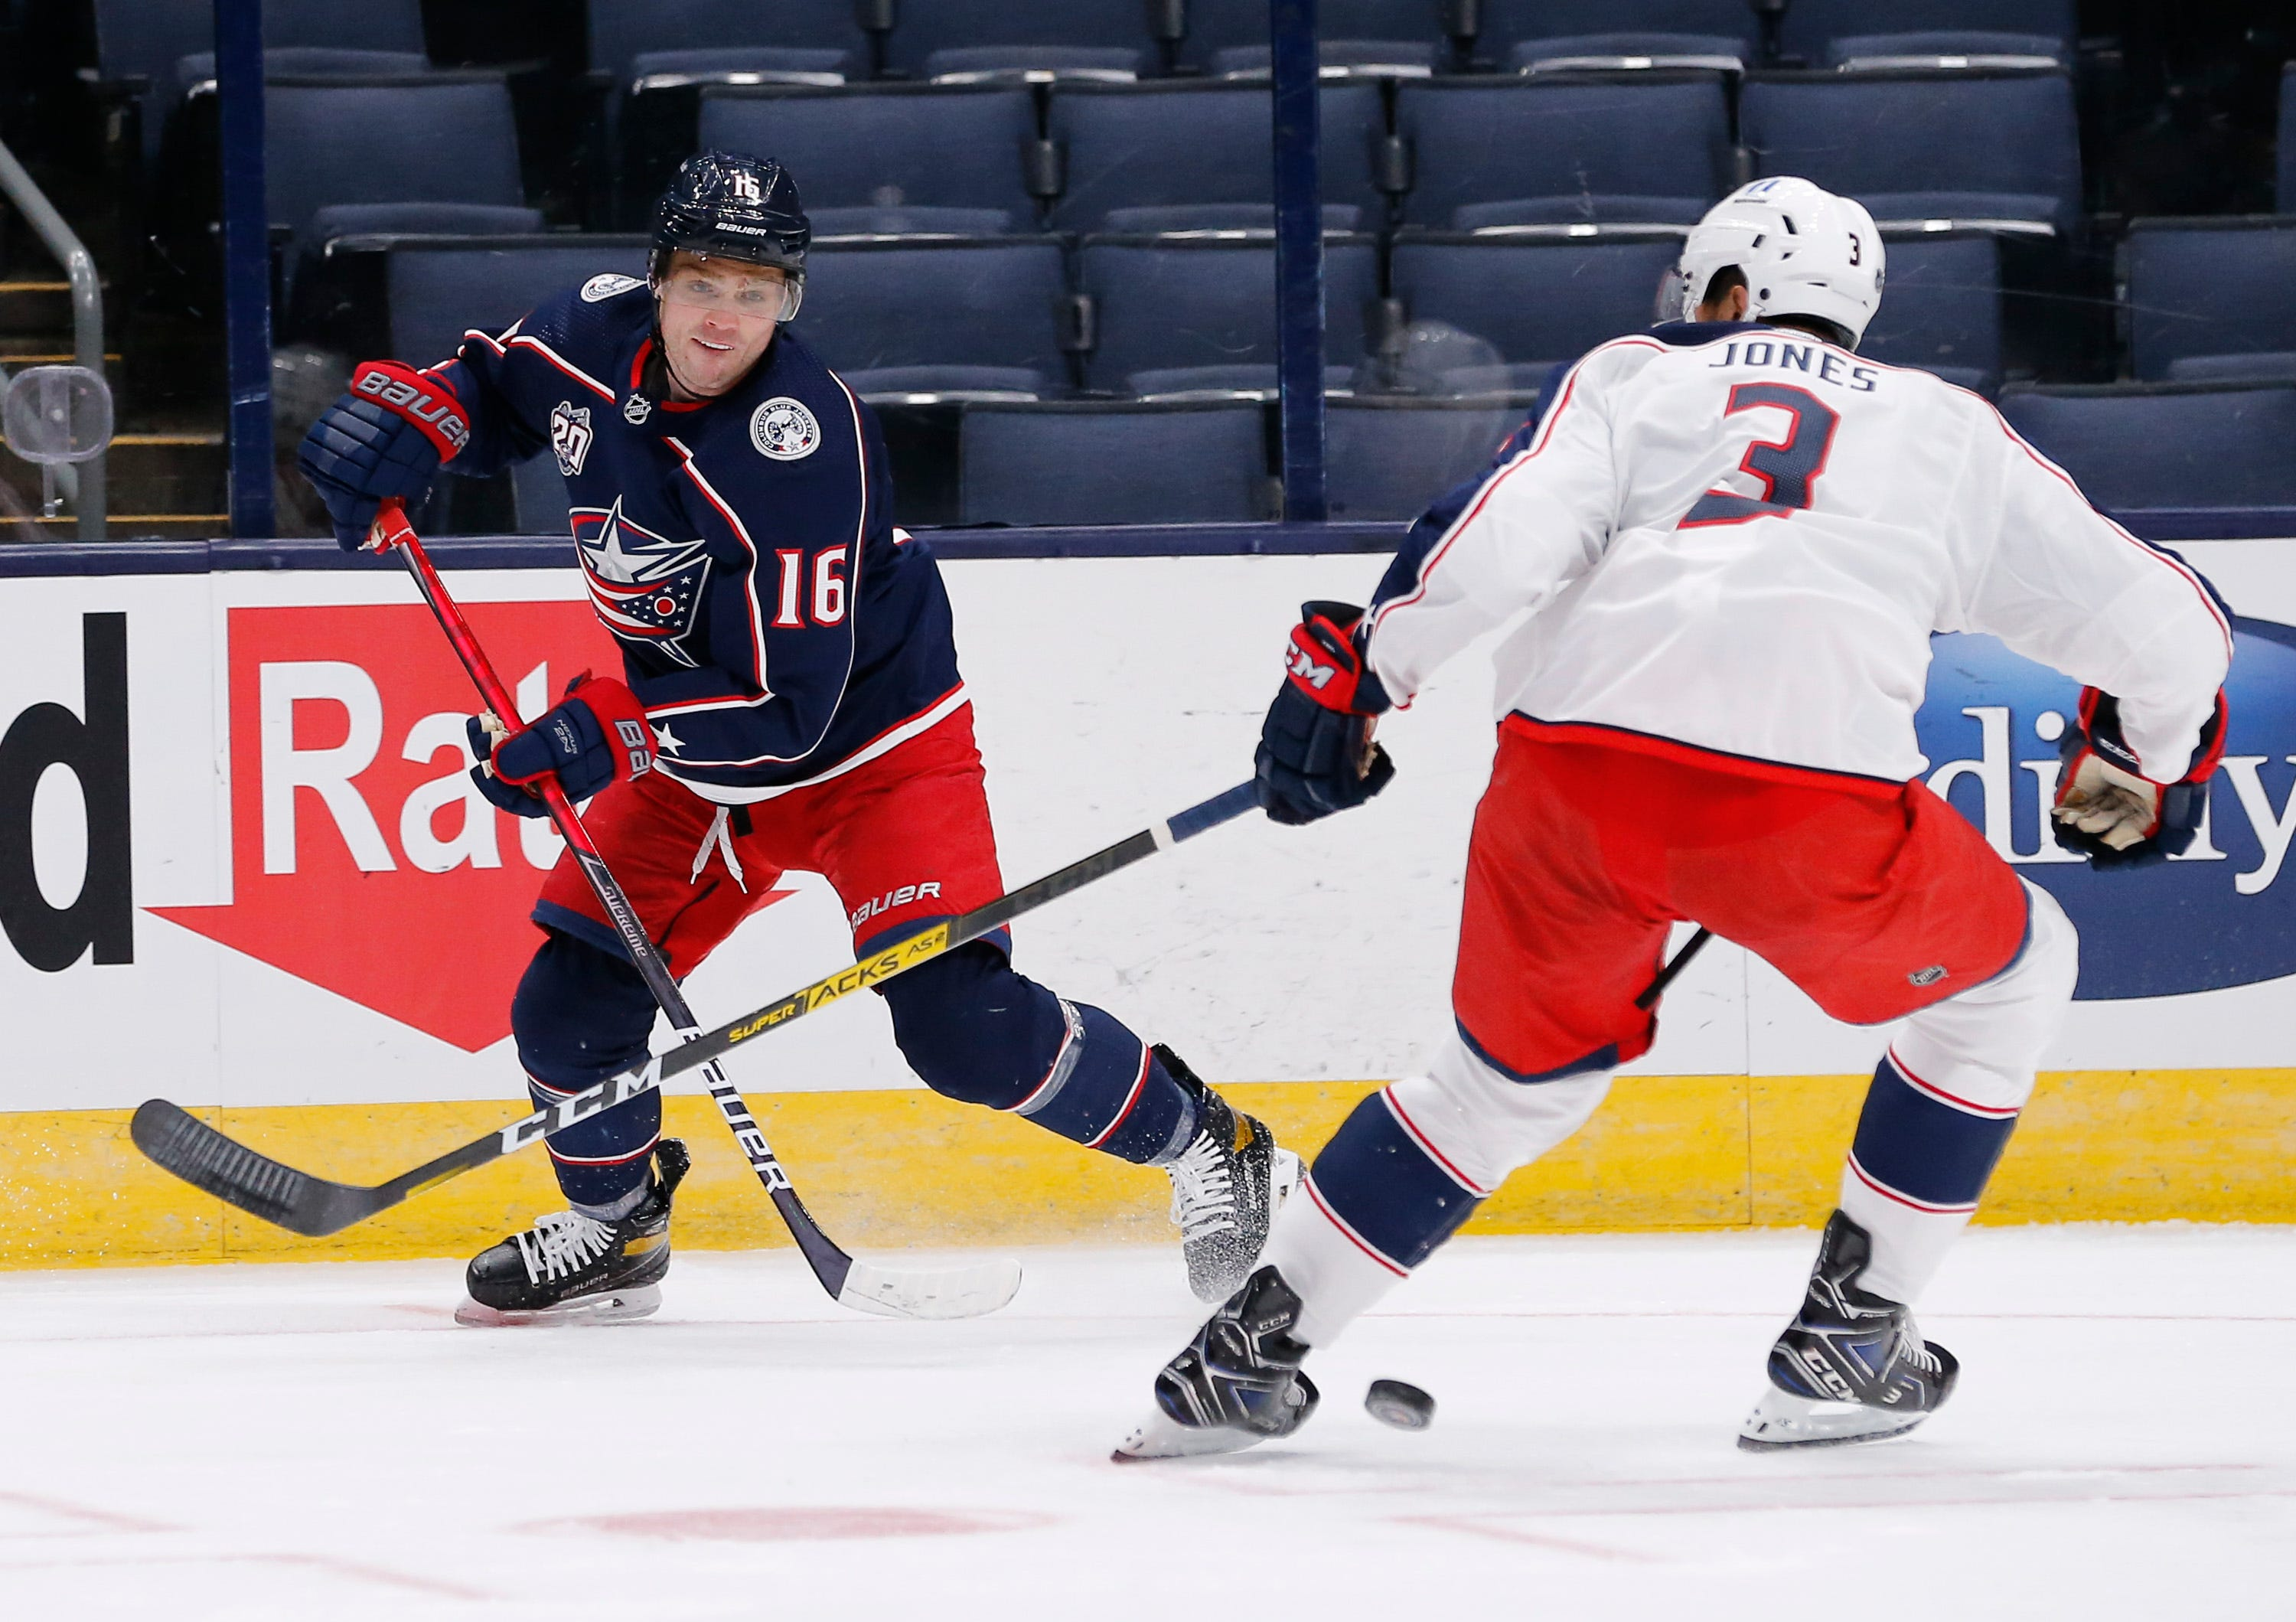 The Blue Jackets want Max Domi to shoot his shot in hunt for goals